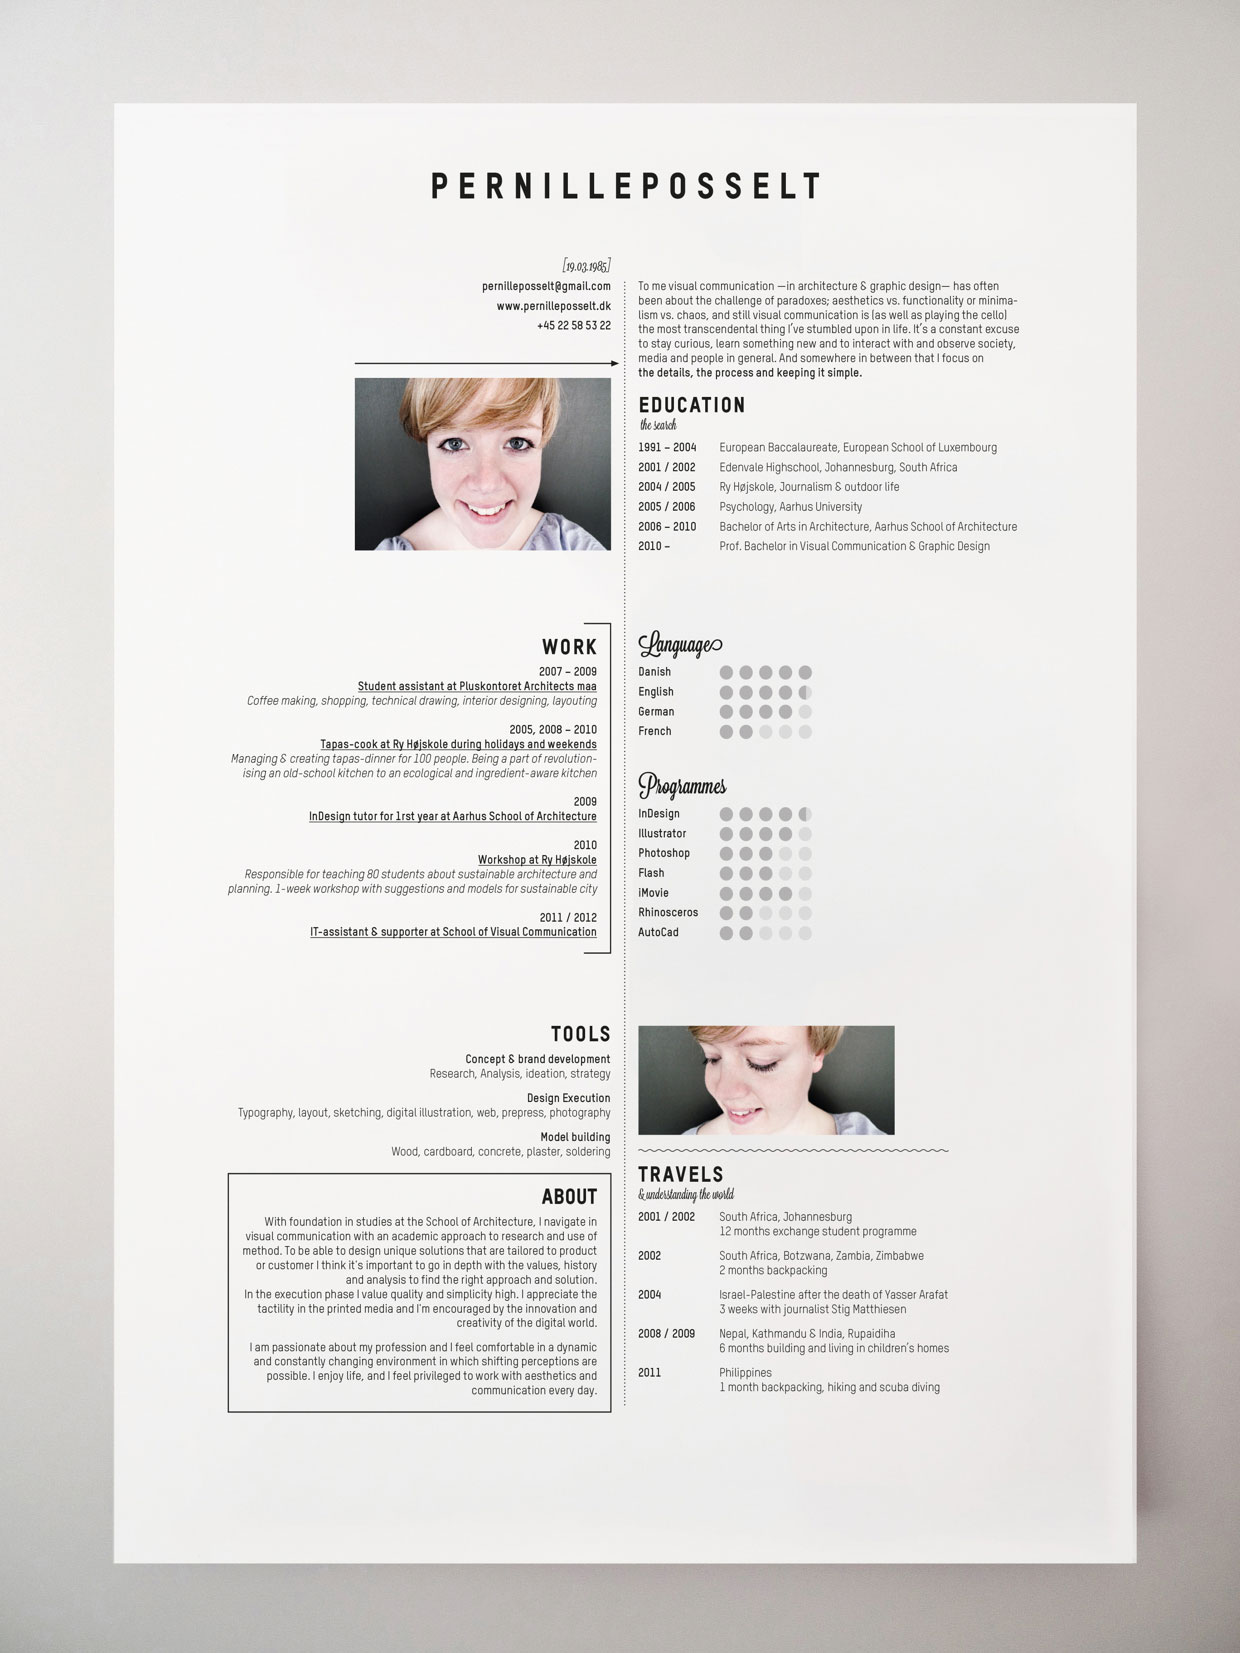 Creative Resumes Resume Insperation On Pinterest Resume Resume Design